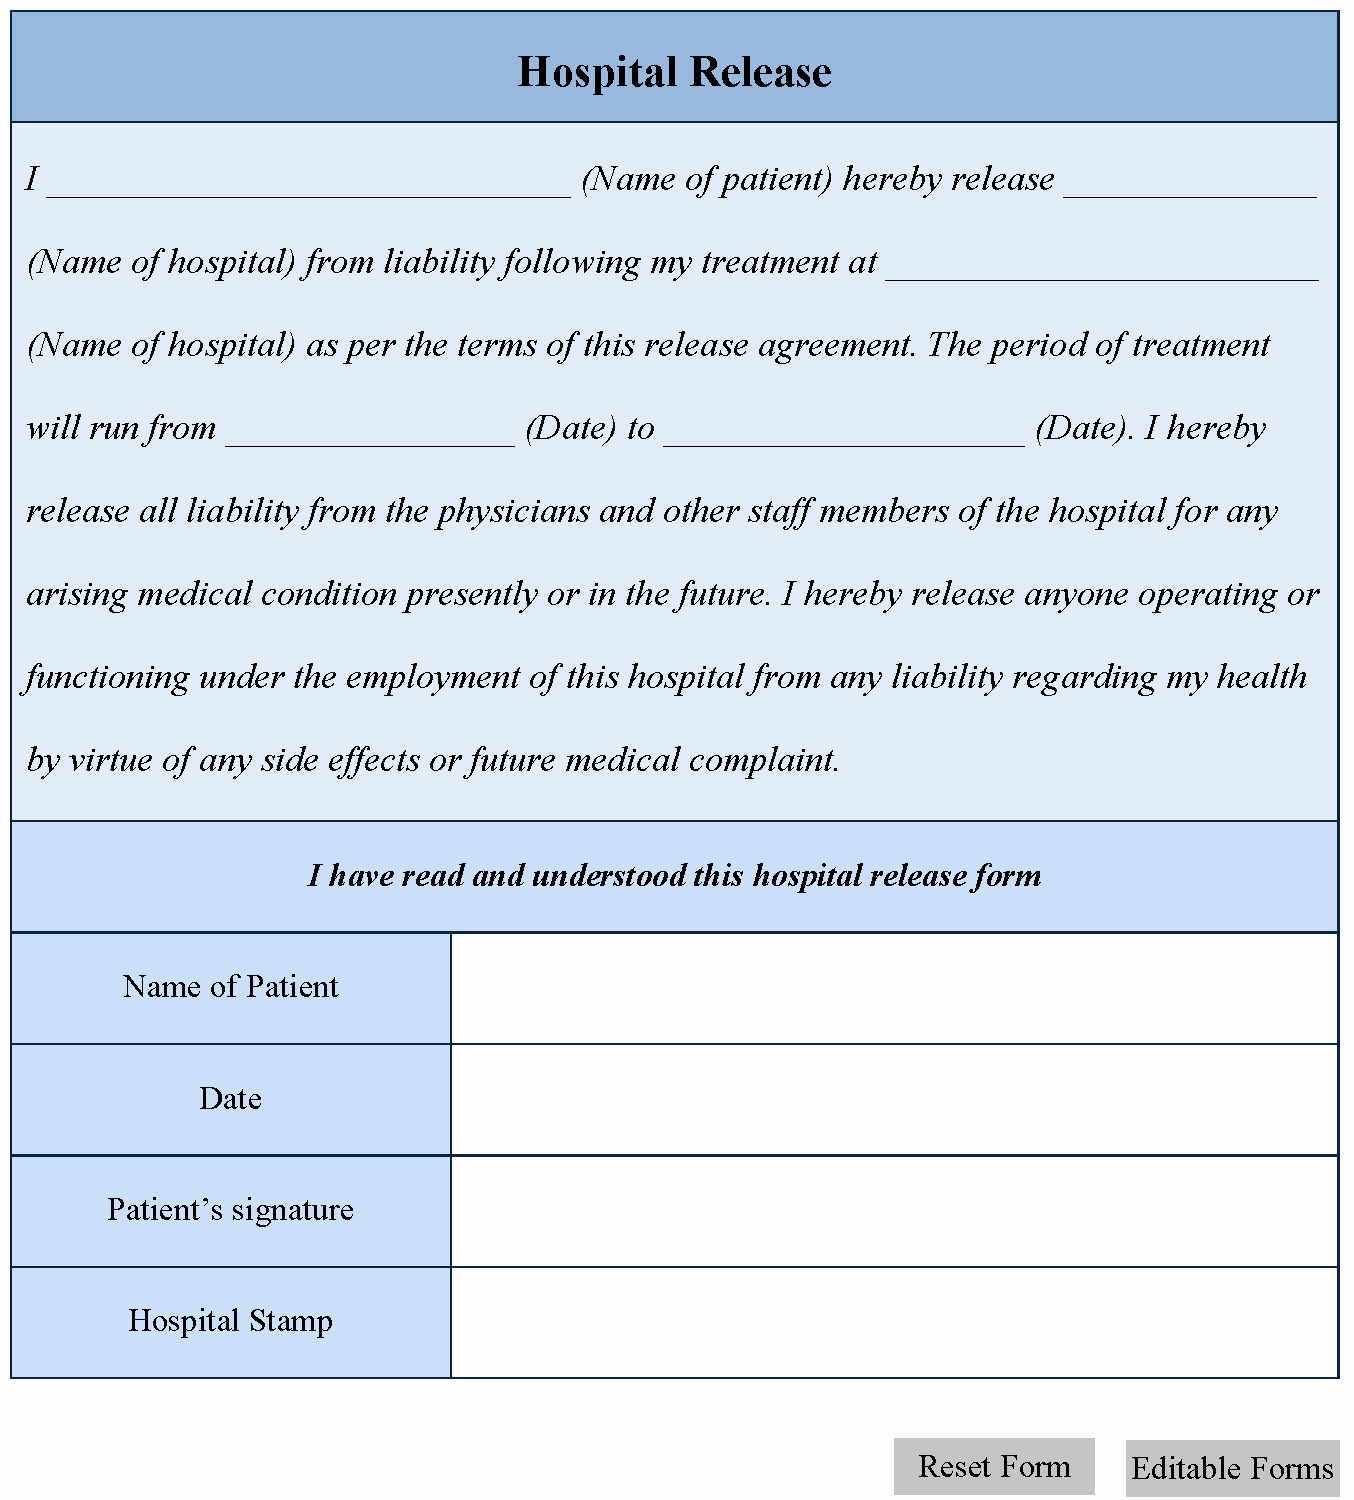 Hospital Release form